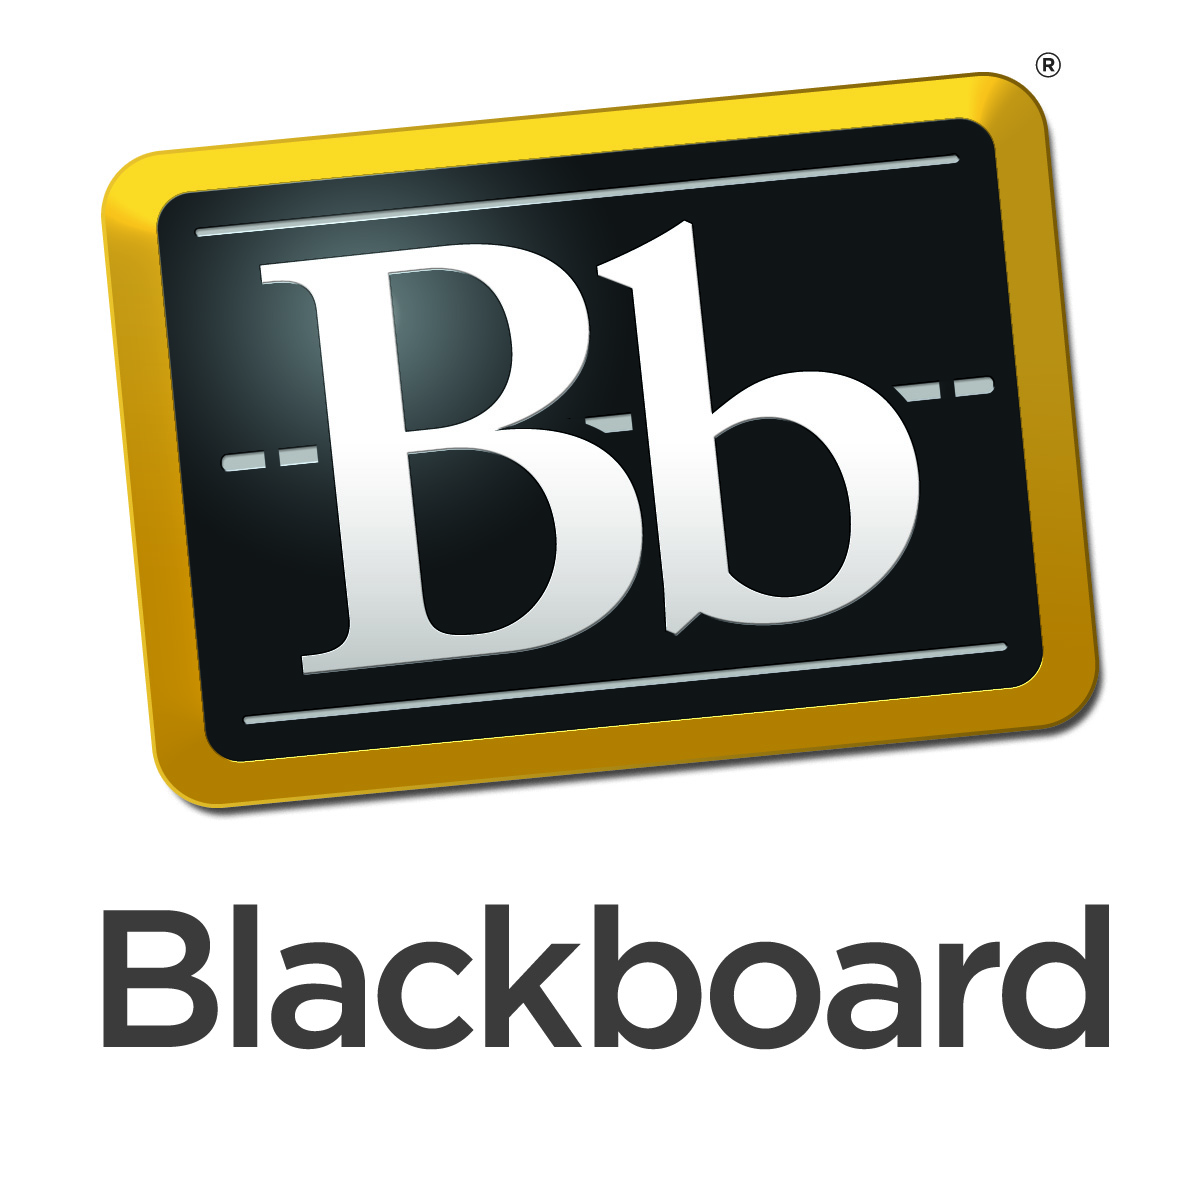 stlcc blackboard Old Blackboard Courses Scheduled for Deletion